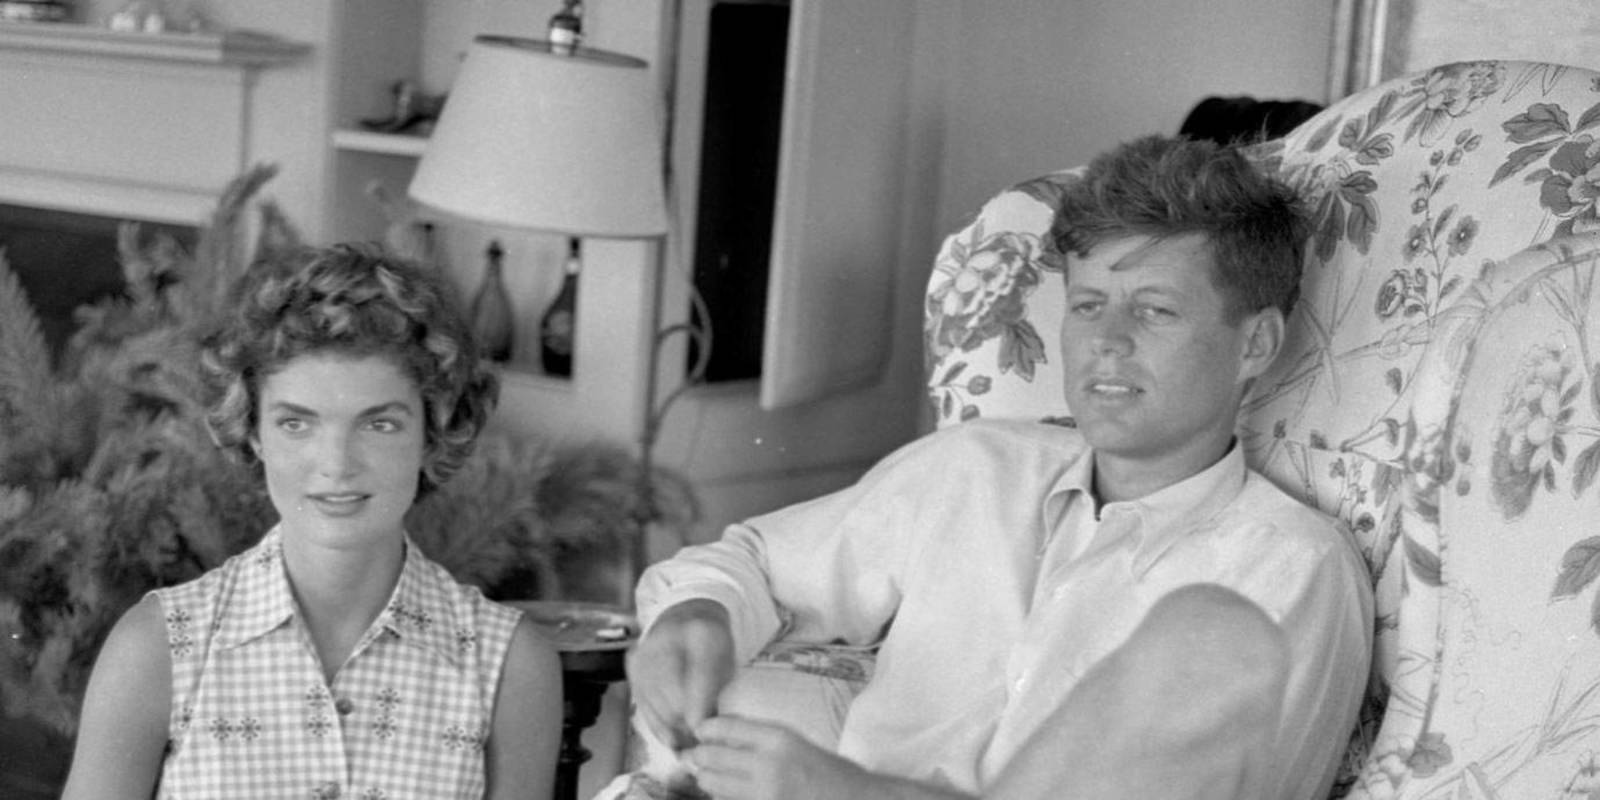 hyannis port buddhist single men John fitzgerald jack kennedy (may 29, 1917 – november 22, 1963), often referred to by his initials jfk, was the 35th president of the united states, serving from 1961 until his assassination in 1963.